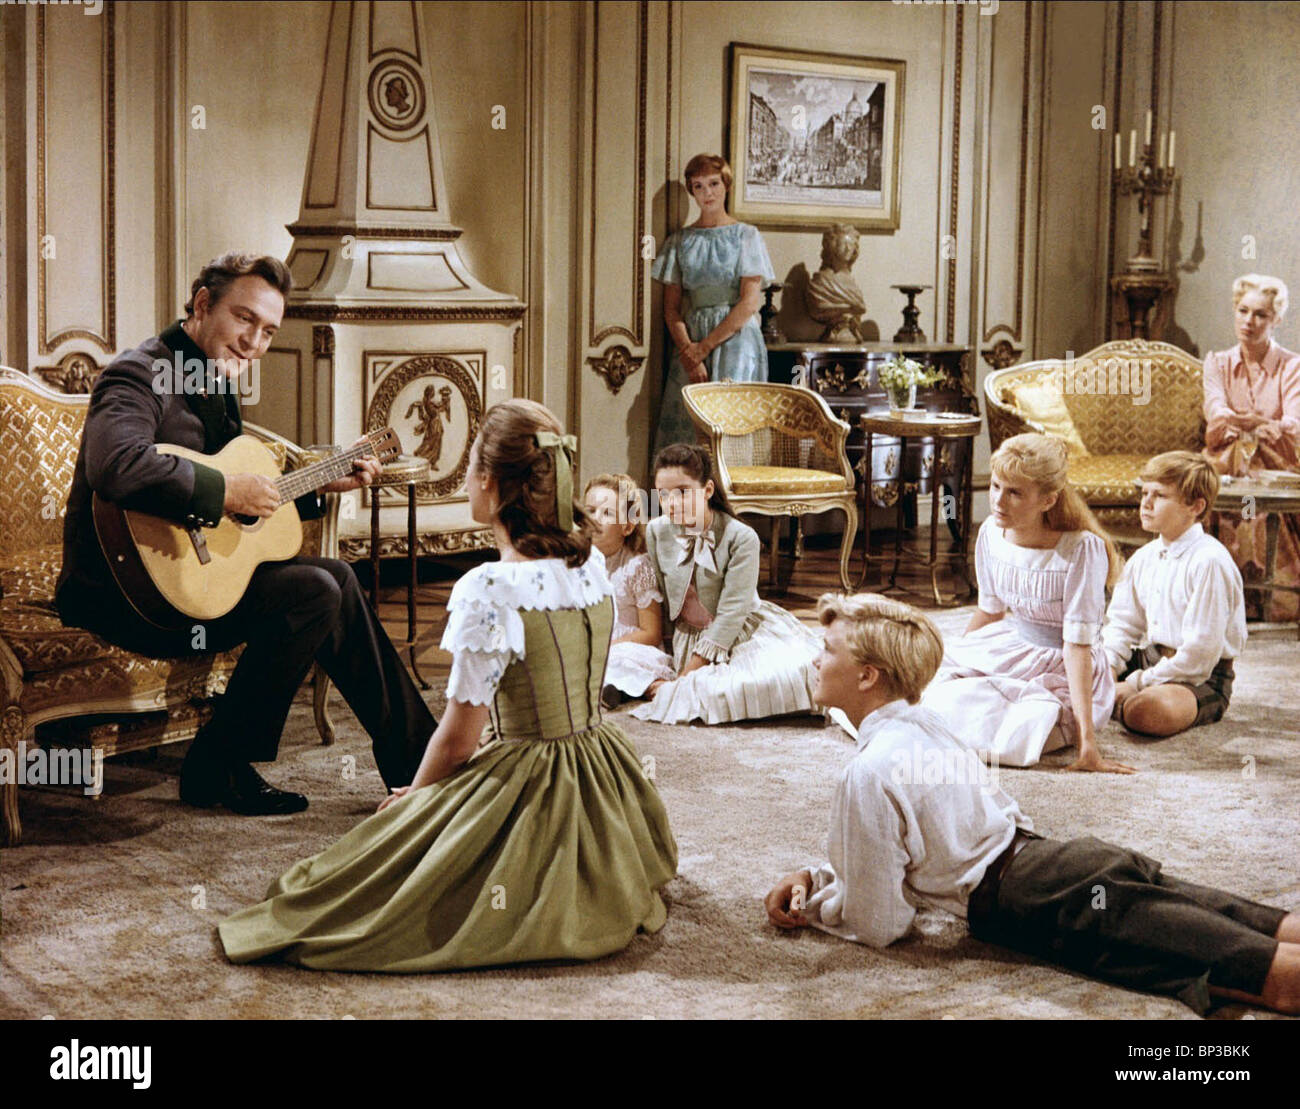 JULIE ANDREWS ELEONOR PARKER KYM KARATH DEBBIE TURNER HEATHER MENZIES ANGELA CARTWRIGHT DUANE CHASE Christopher Imagen De Stock